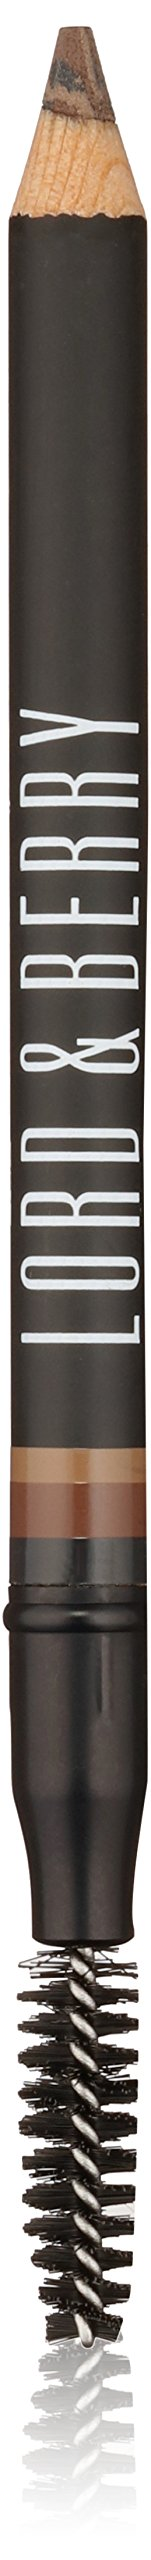 Lord & Berry PERFECT BROW Pencil, Eyebrow Pencil with Blending Tool, Brunette by Lord & Berry